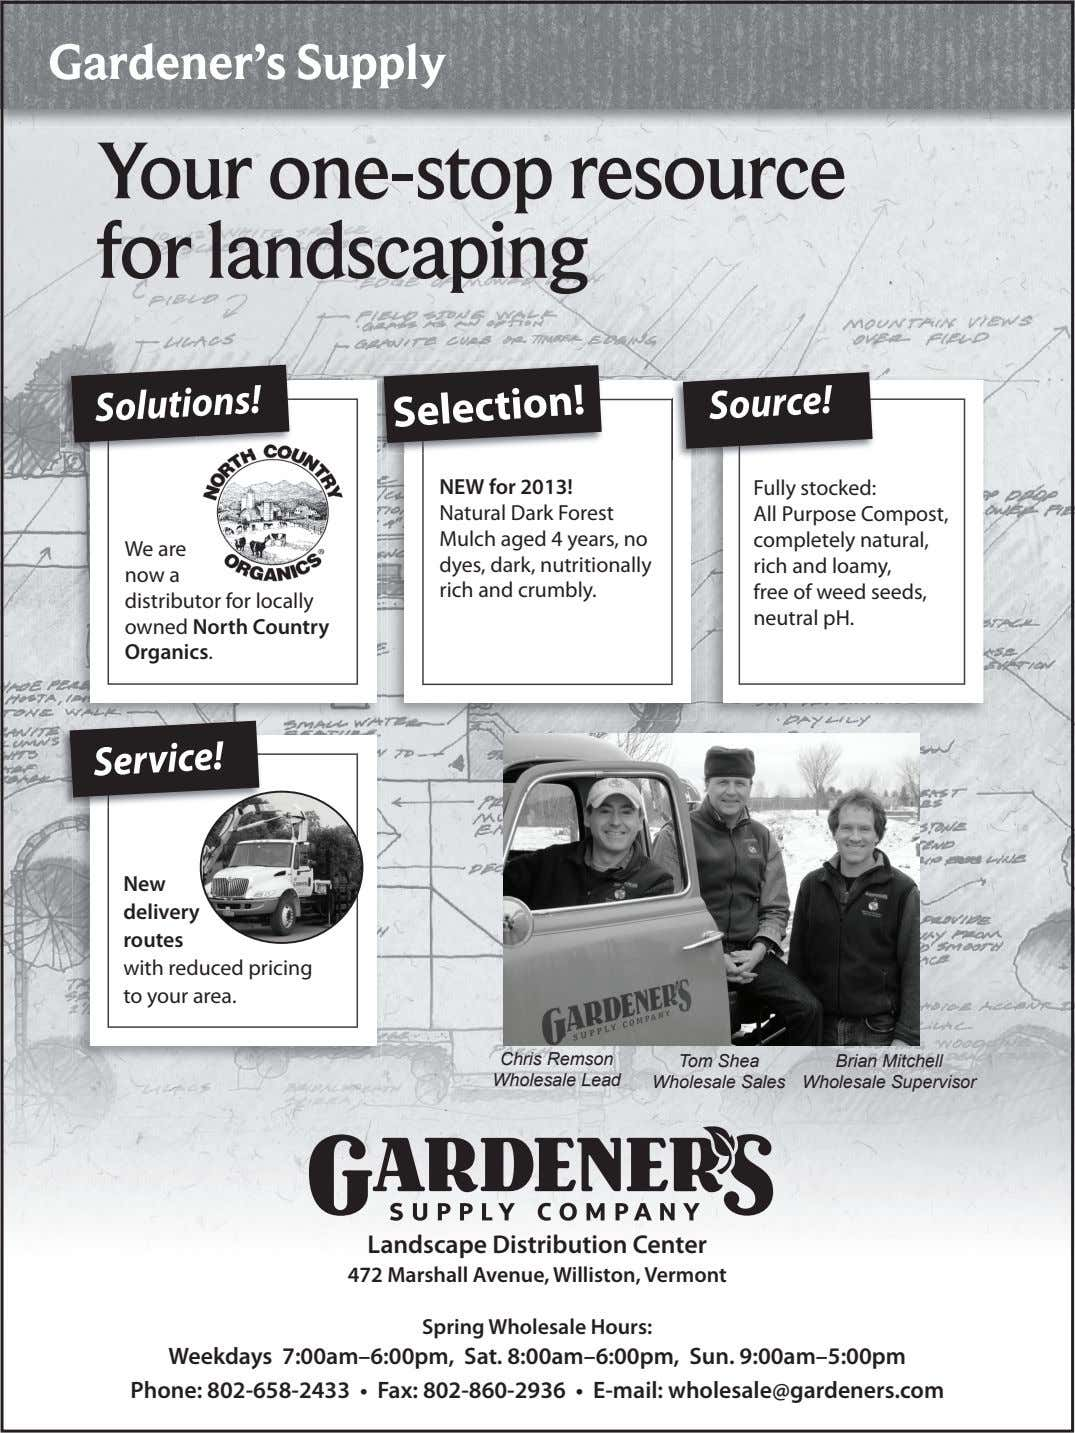 Gardener's Supply Your one-stop resource for landscaping We are now a distributor for locally owned